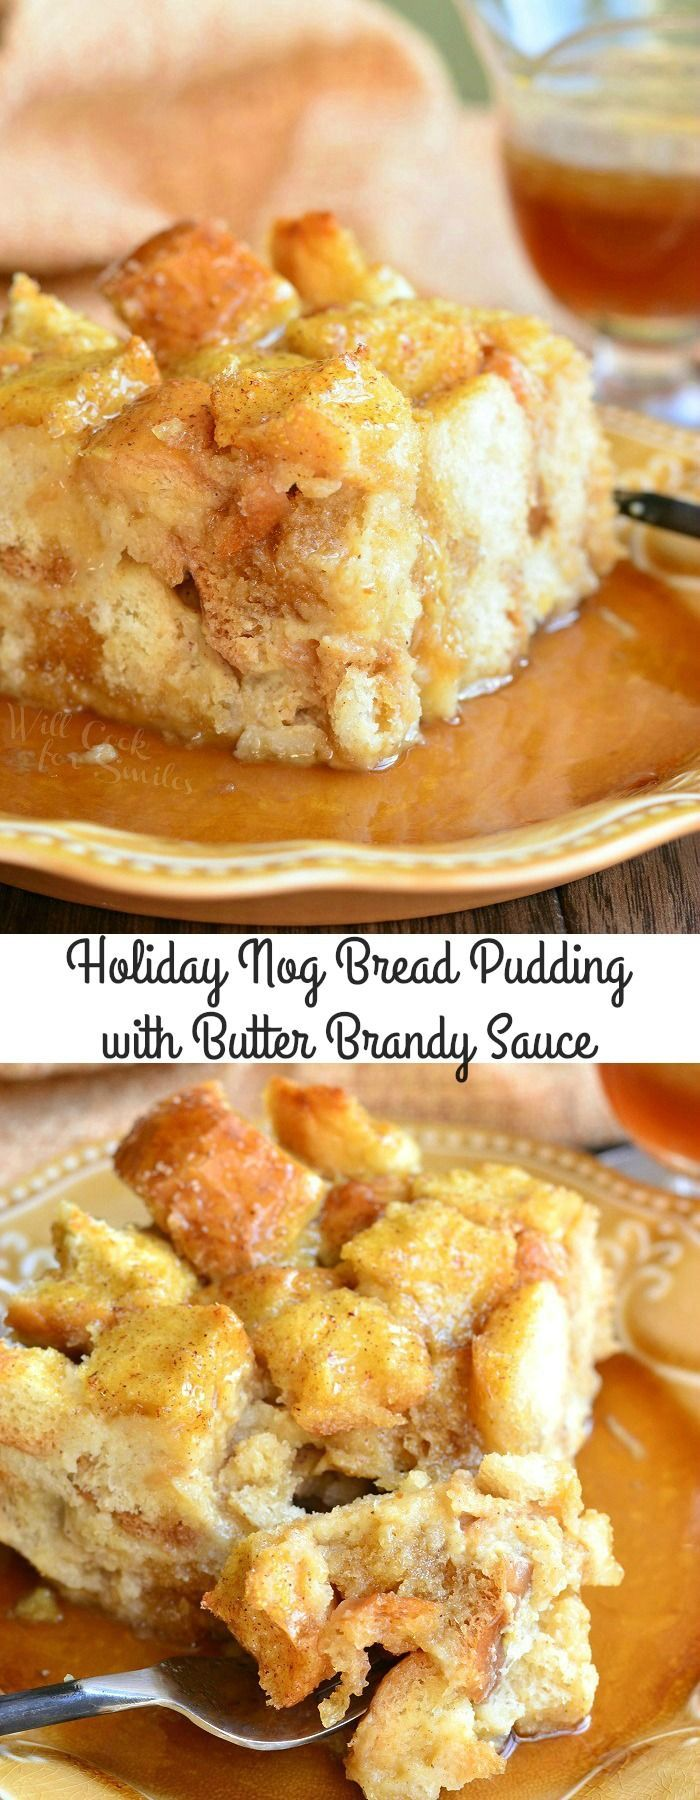 Holiday Nog Bread Pudding with Butter Brandy Sauce   from willcookforsmiles.com #breadpudding #dessert #eggnog